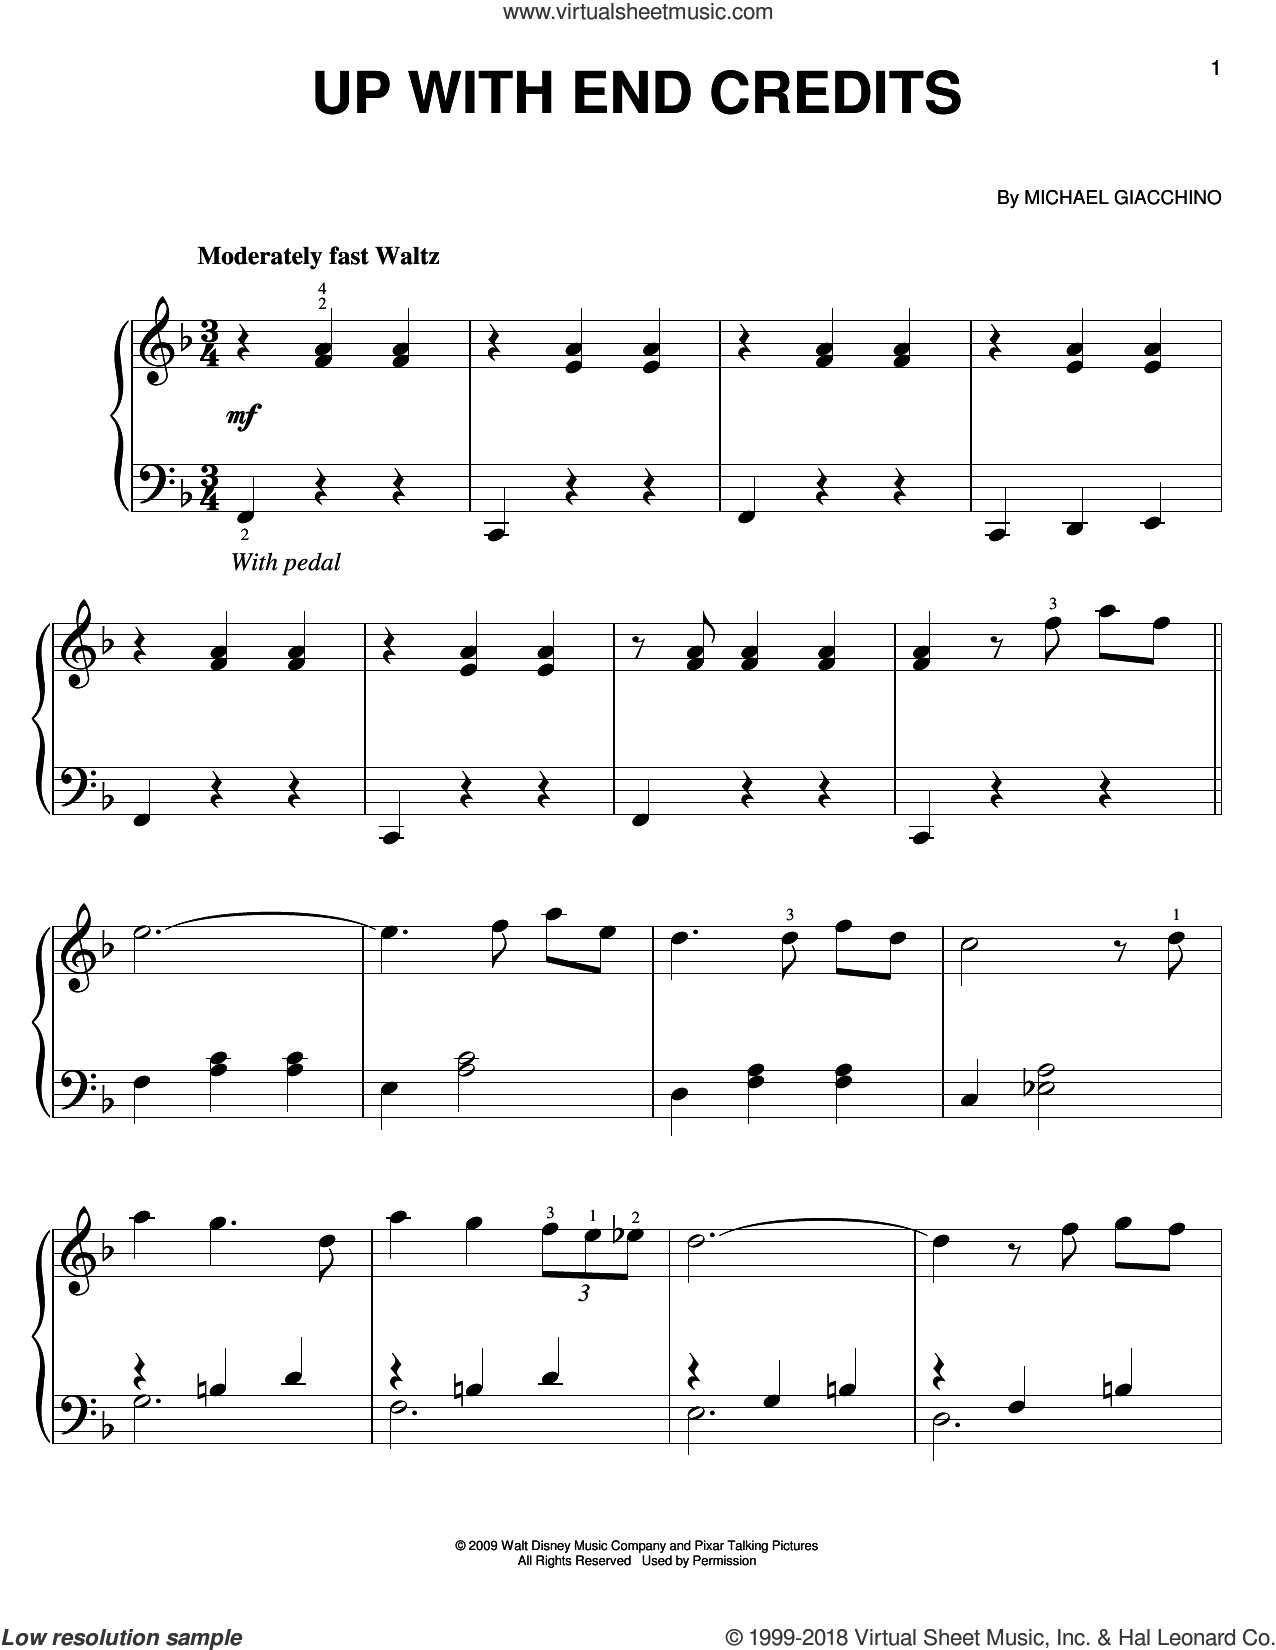 Up With End Credits sheet music for piano solo (chords) by Michael Giacchino